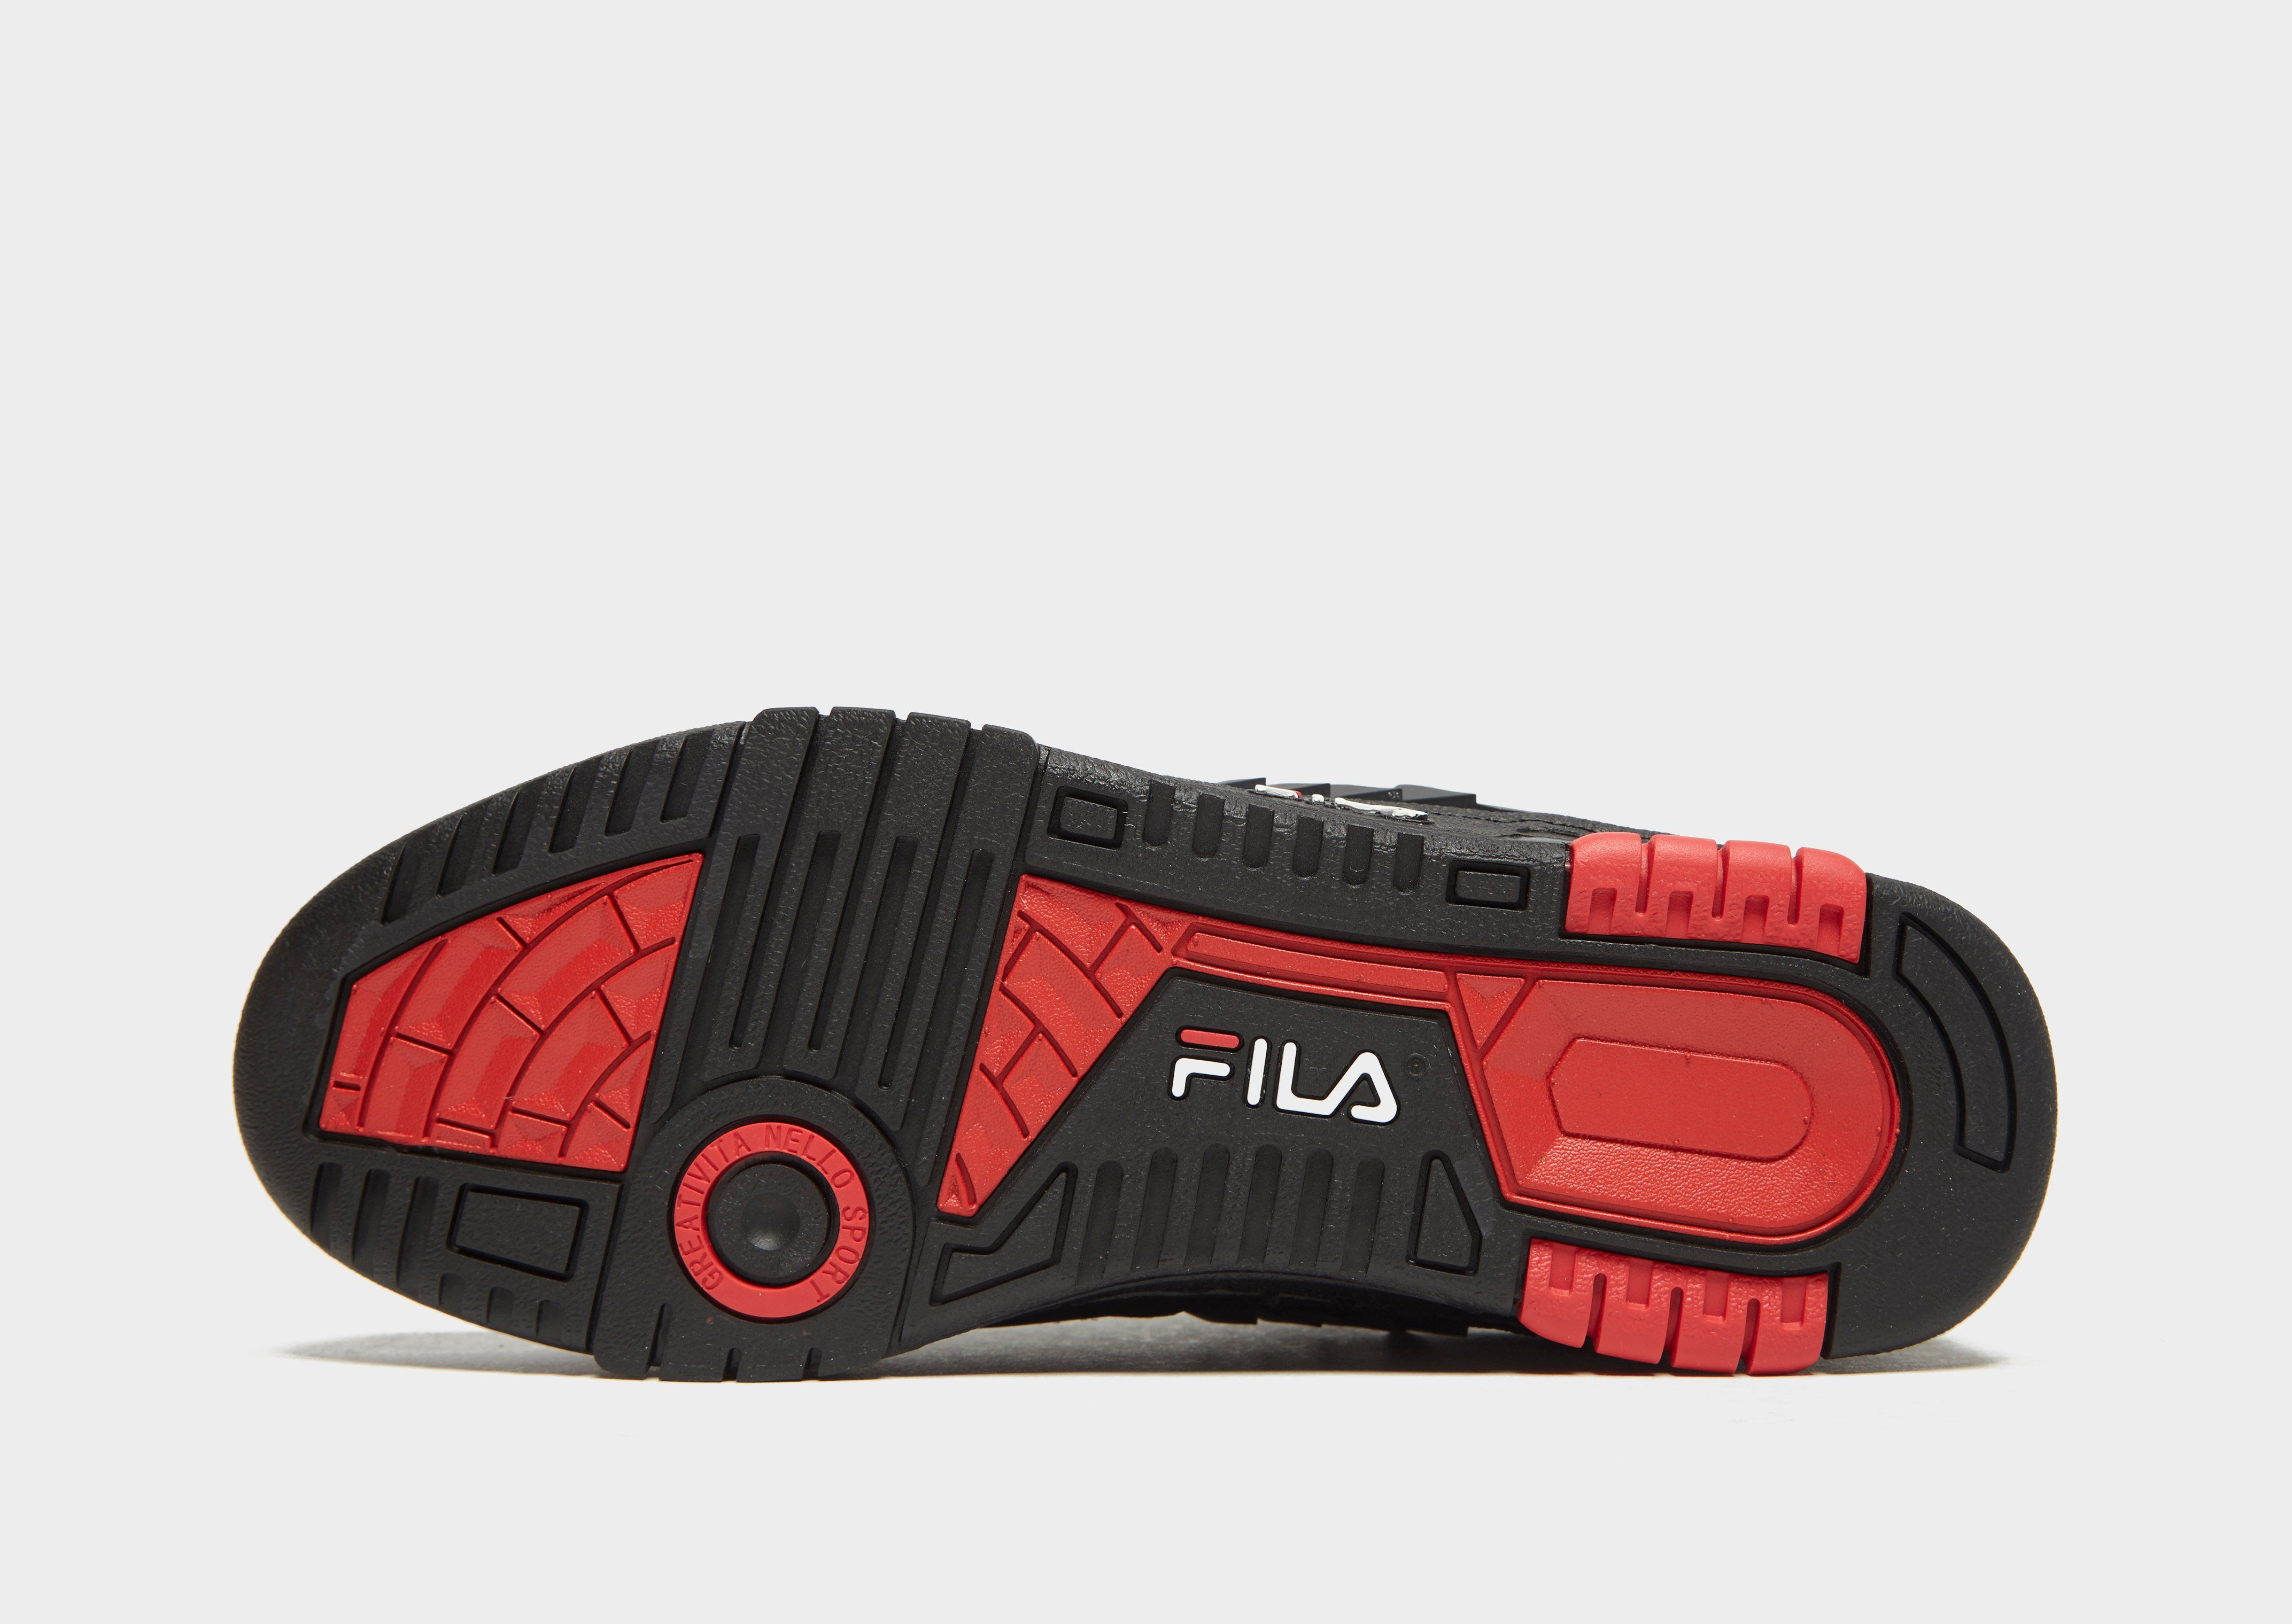 Fila Tourissimo Low Junior